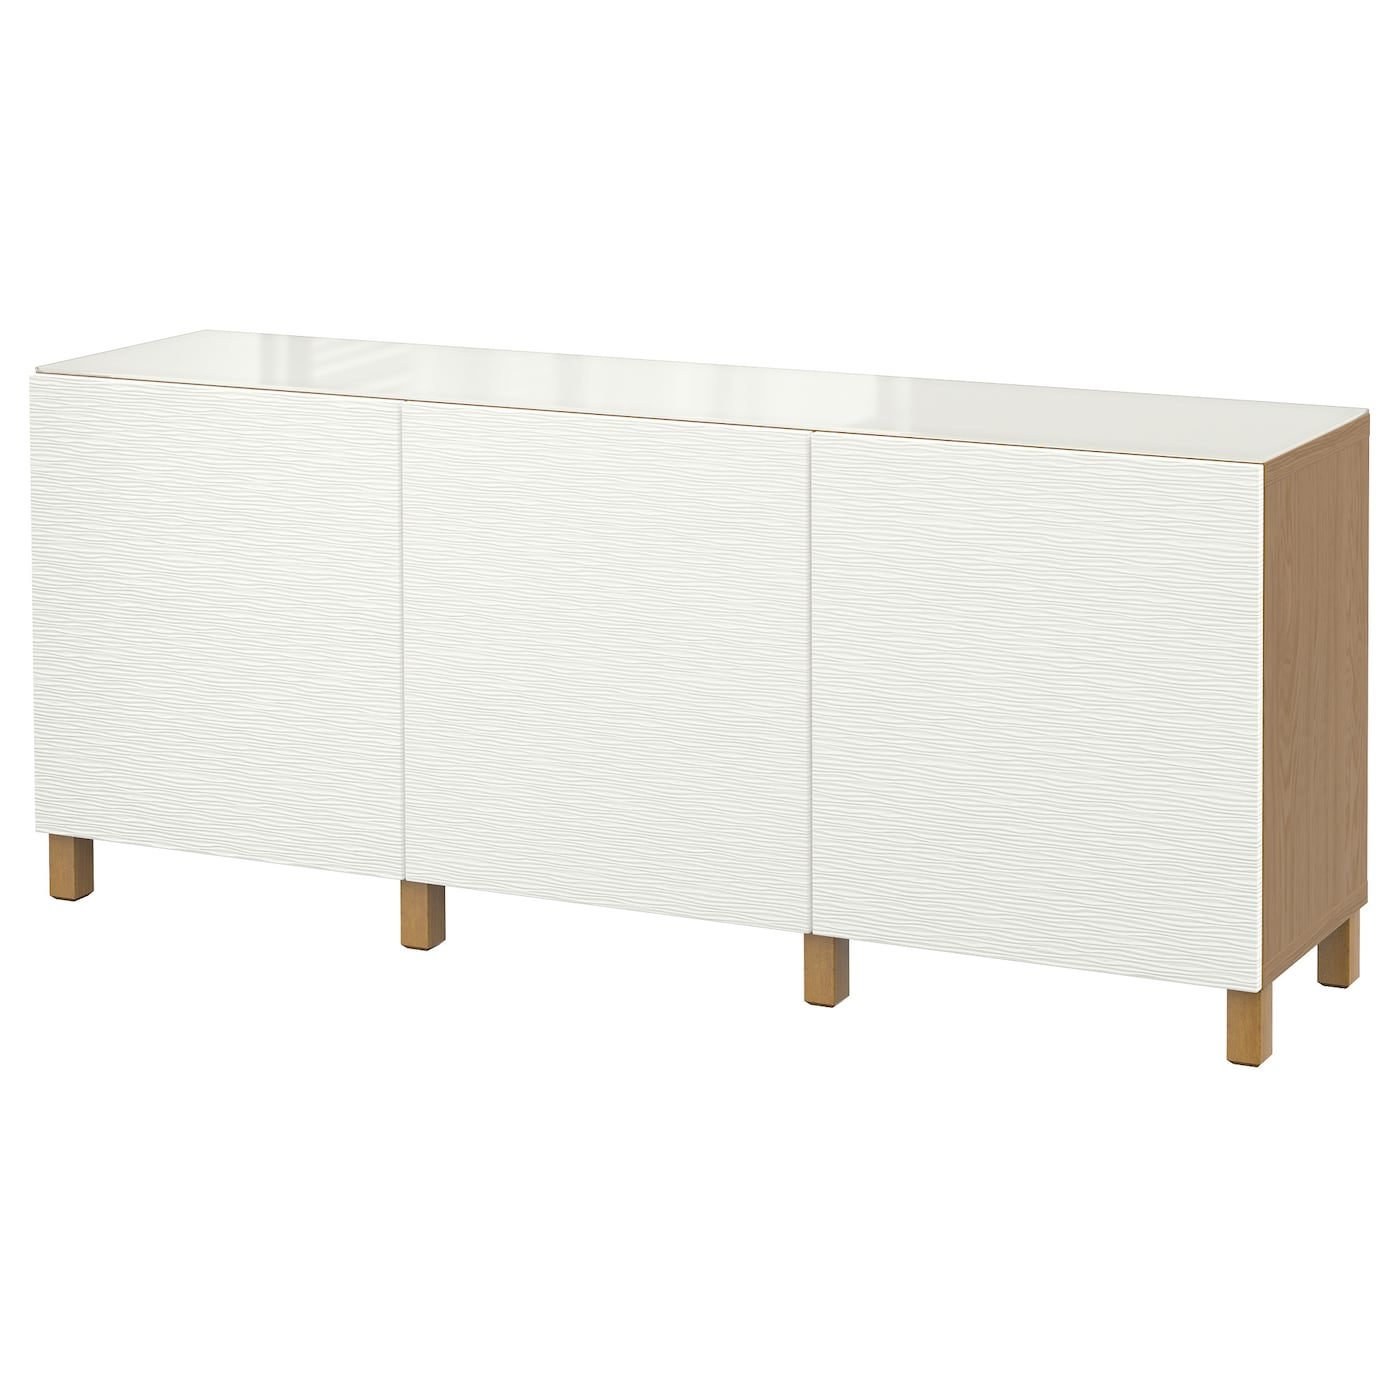 Best storage combination with doors oak effect laxviken for White gloss sideboards at ikea